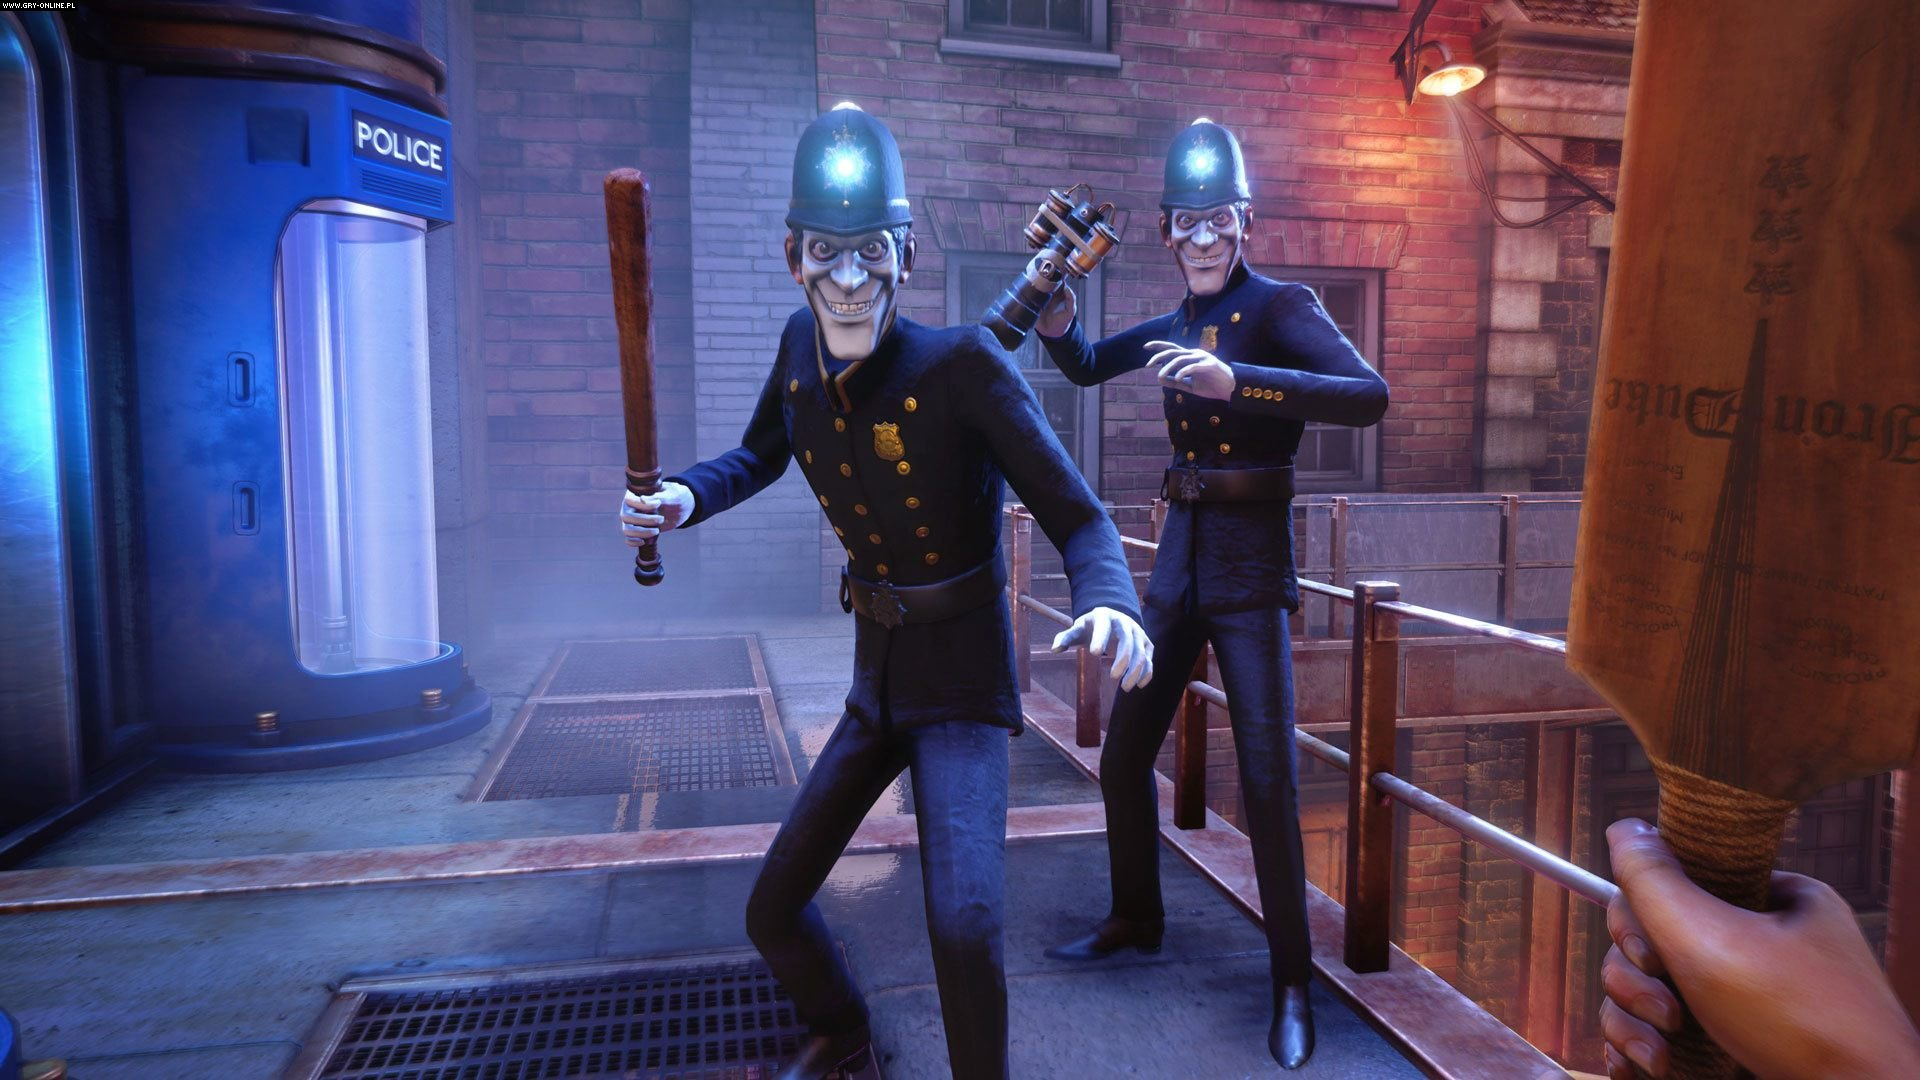 We Happy Few PC, PS4, XONE Gry Screen 16/40, Compulsion Games, Gearbox Publishing